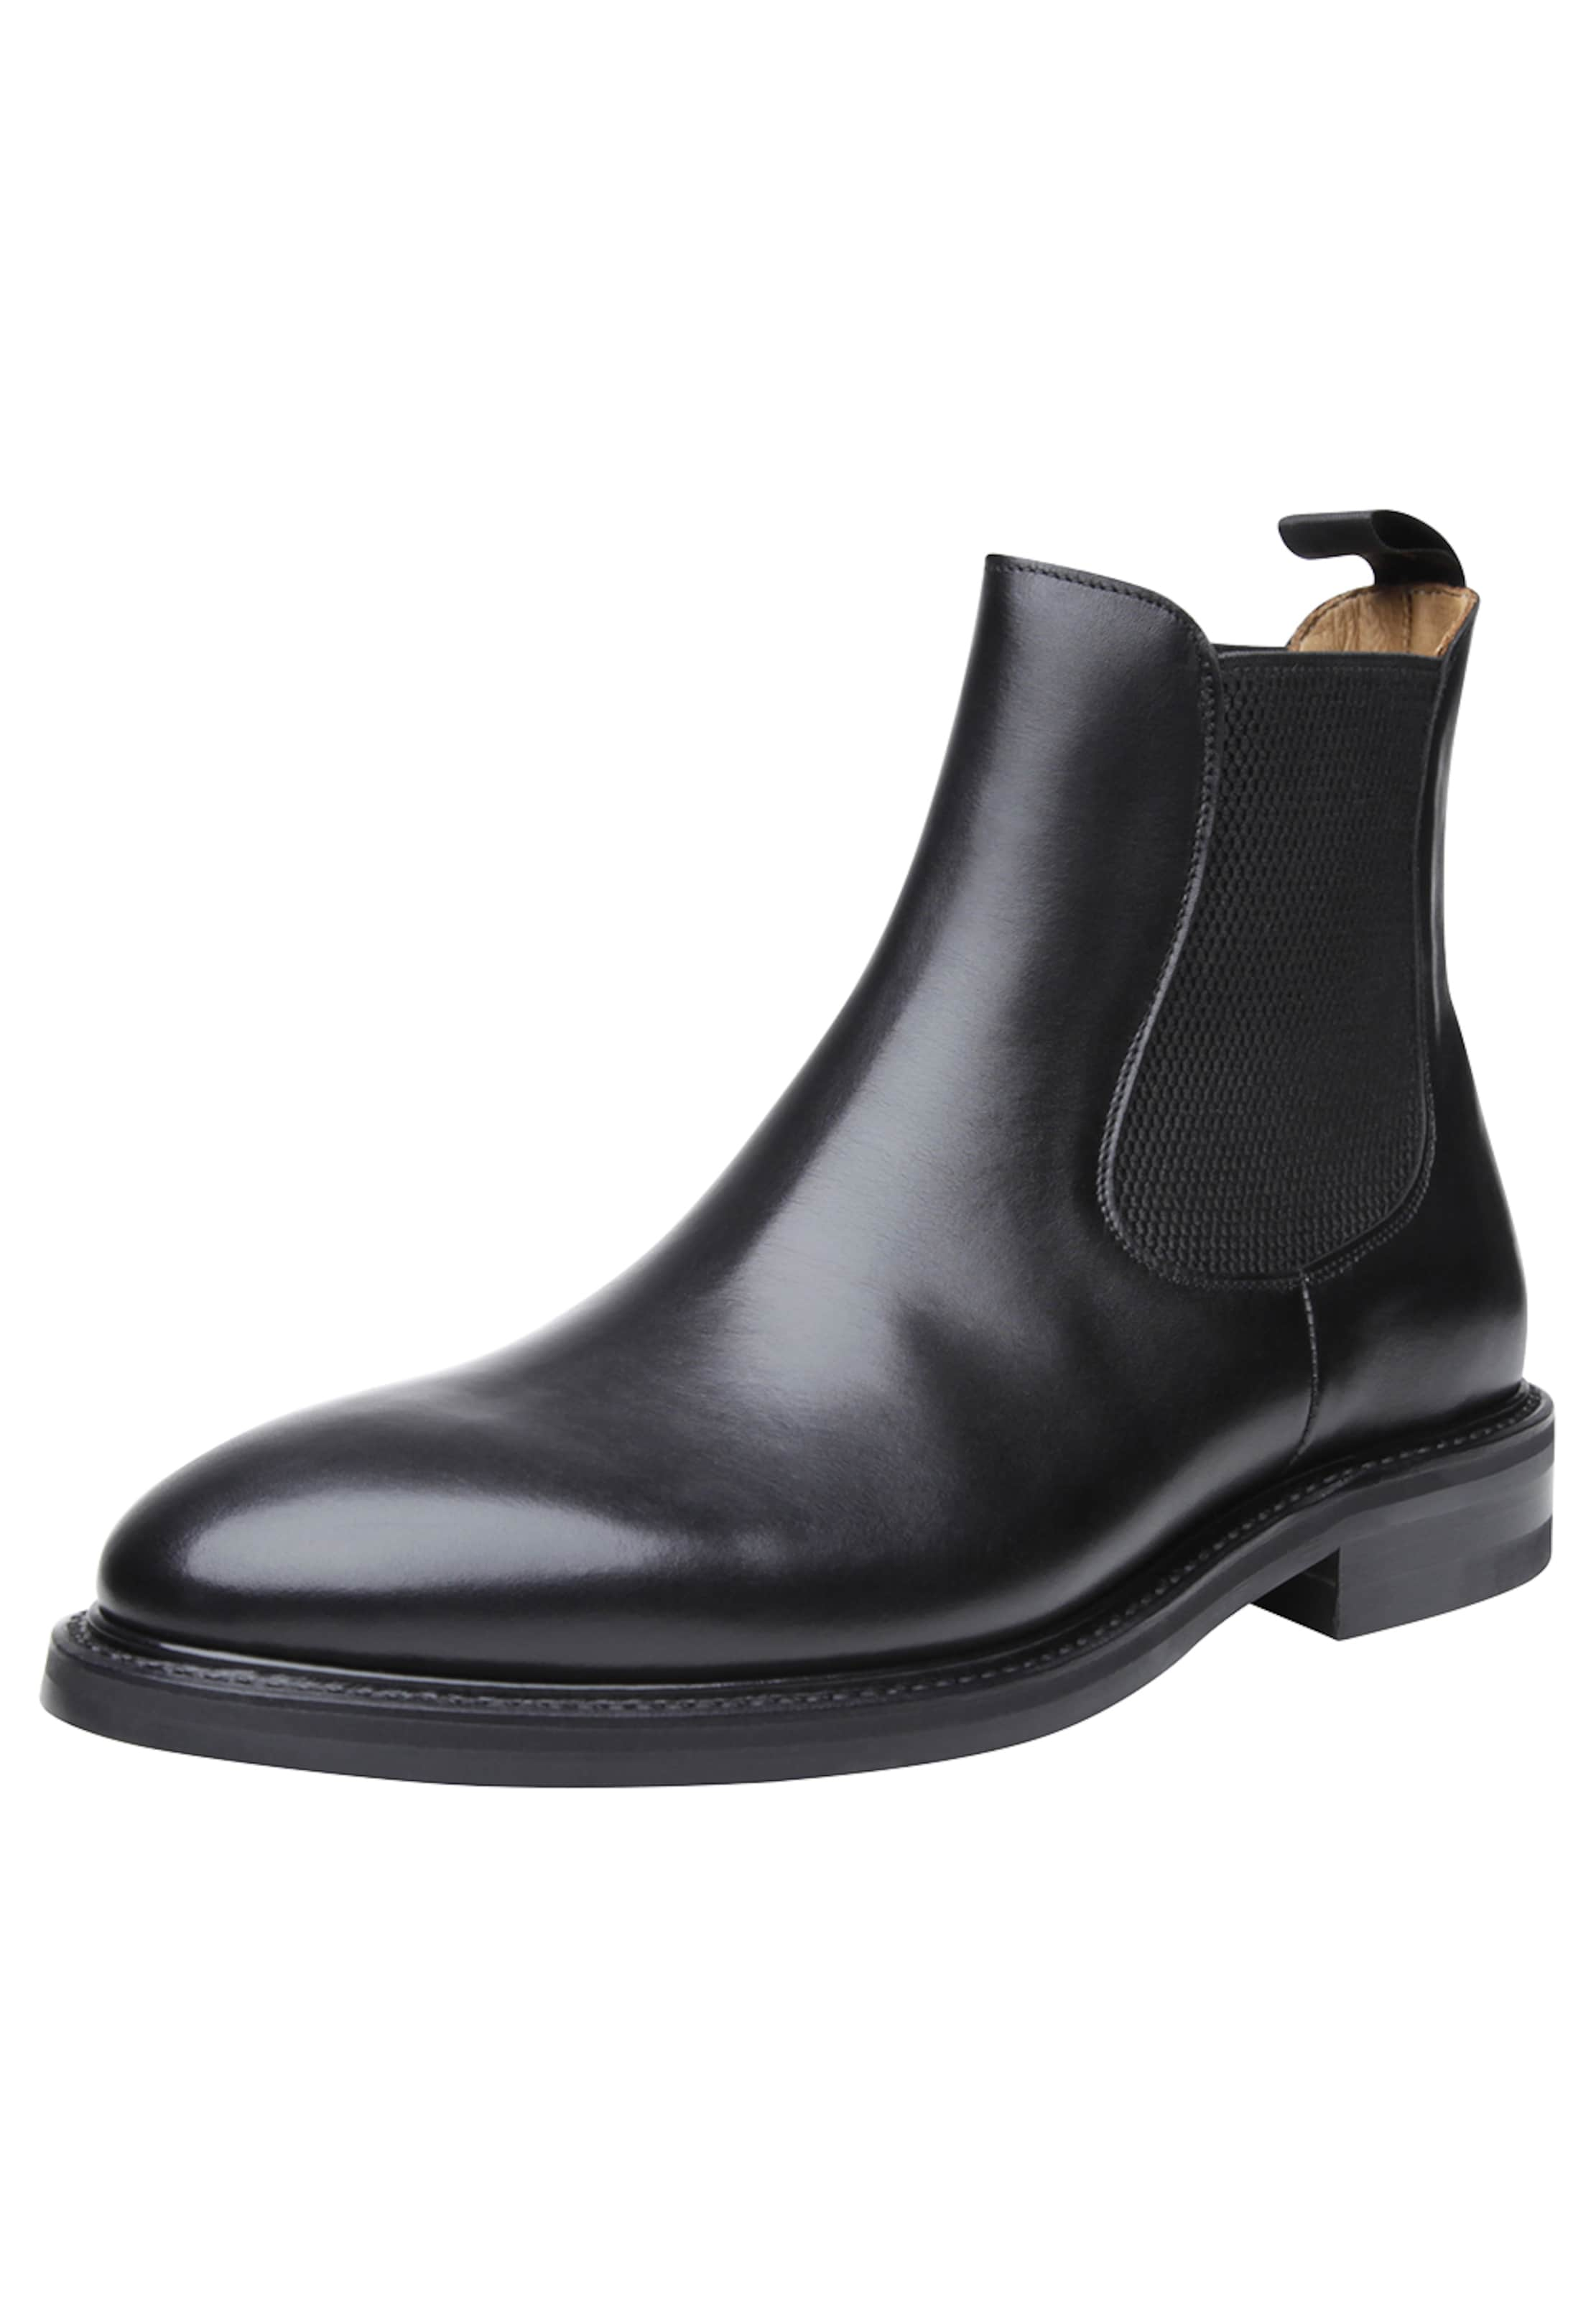 SHOEPASSION | Boots  No. 646